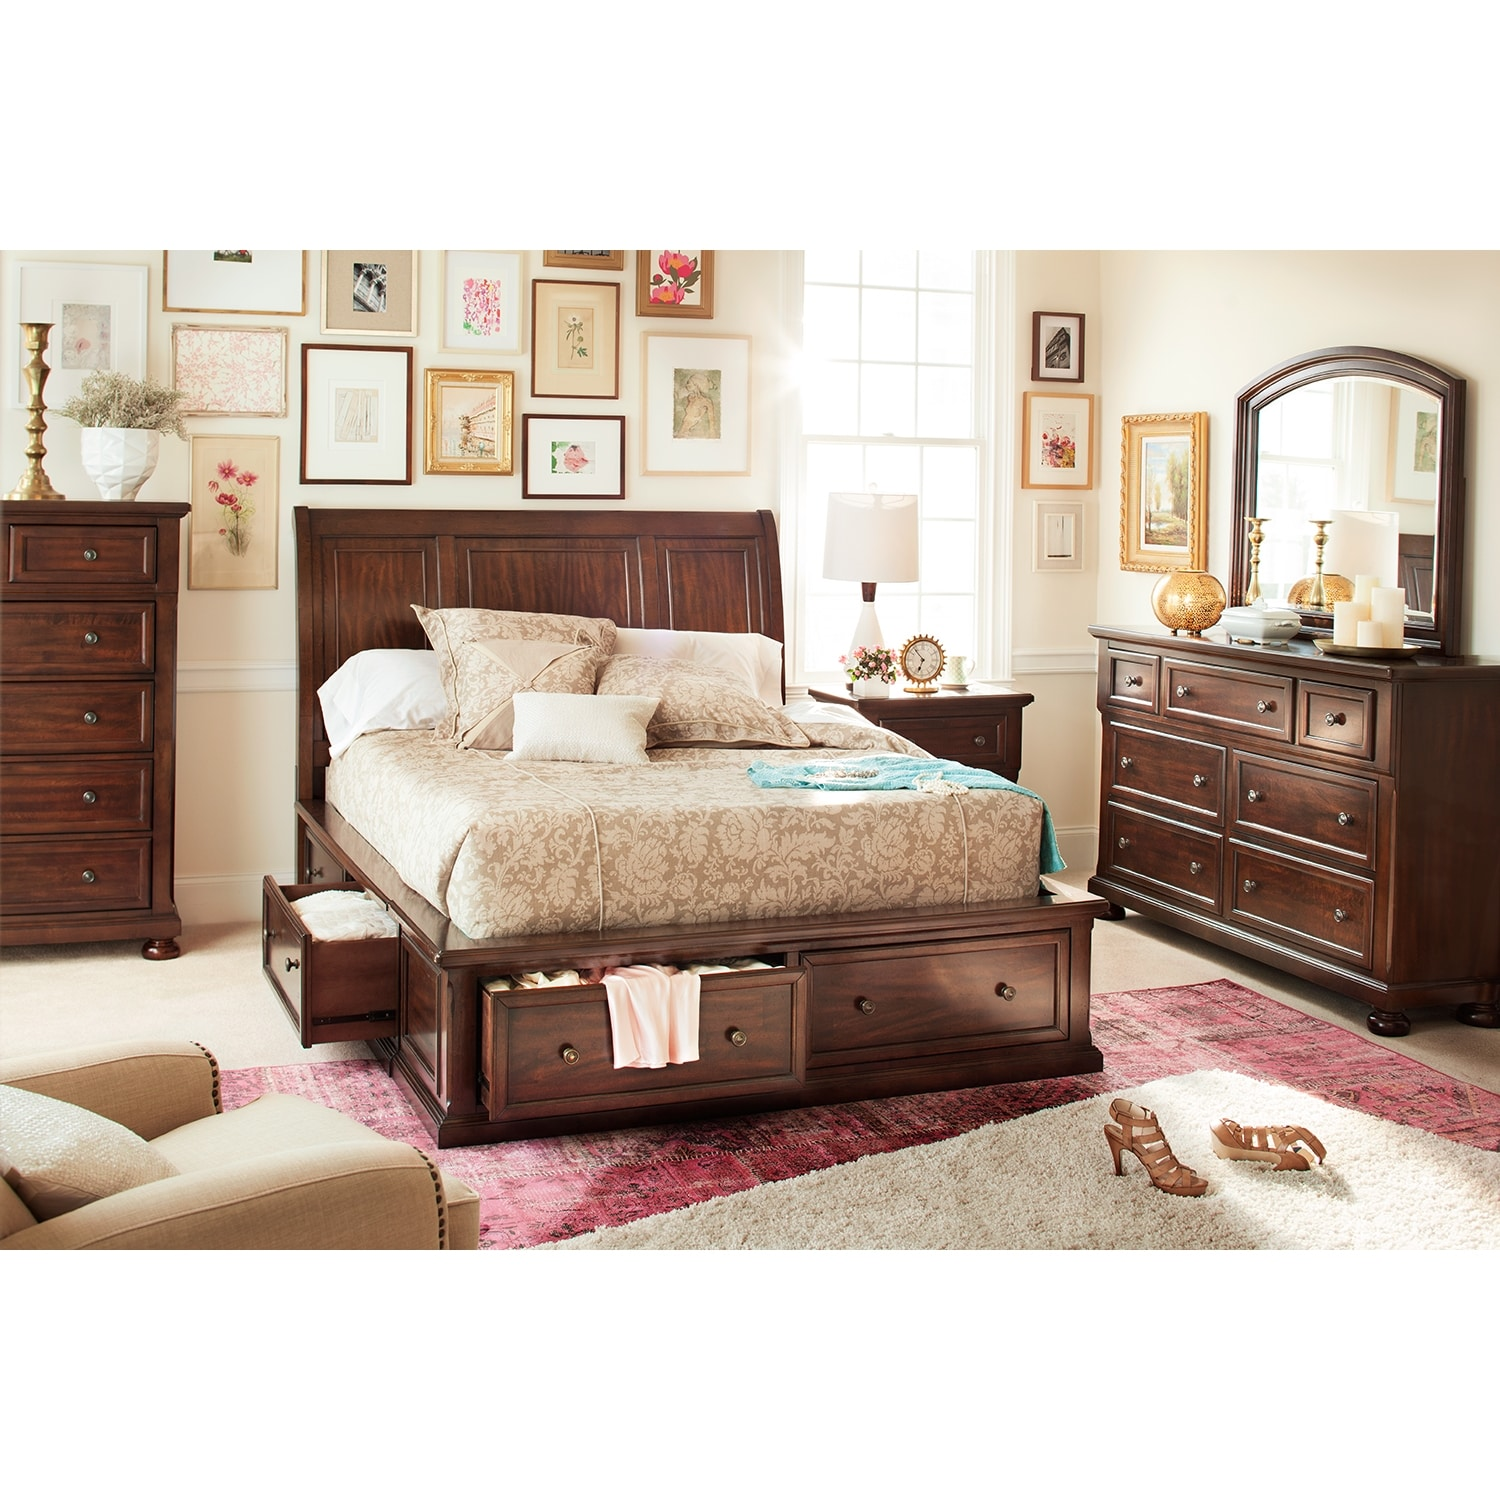 Bedroom Furniture - Hanover 7-Piece Queen Storage Bedroom Set - Cherry